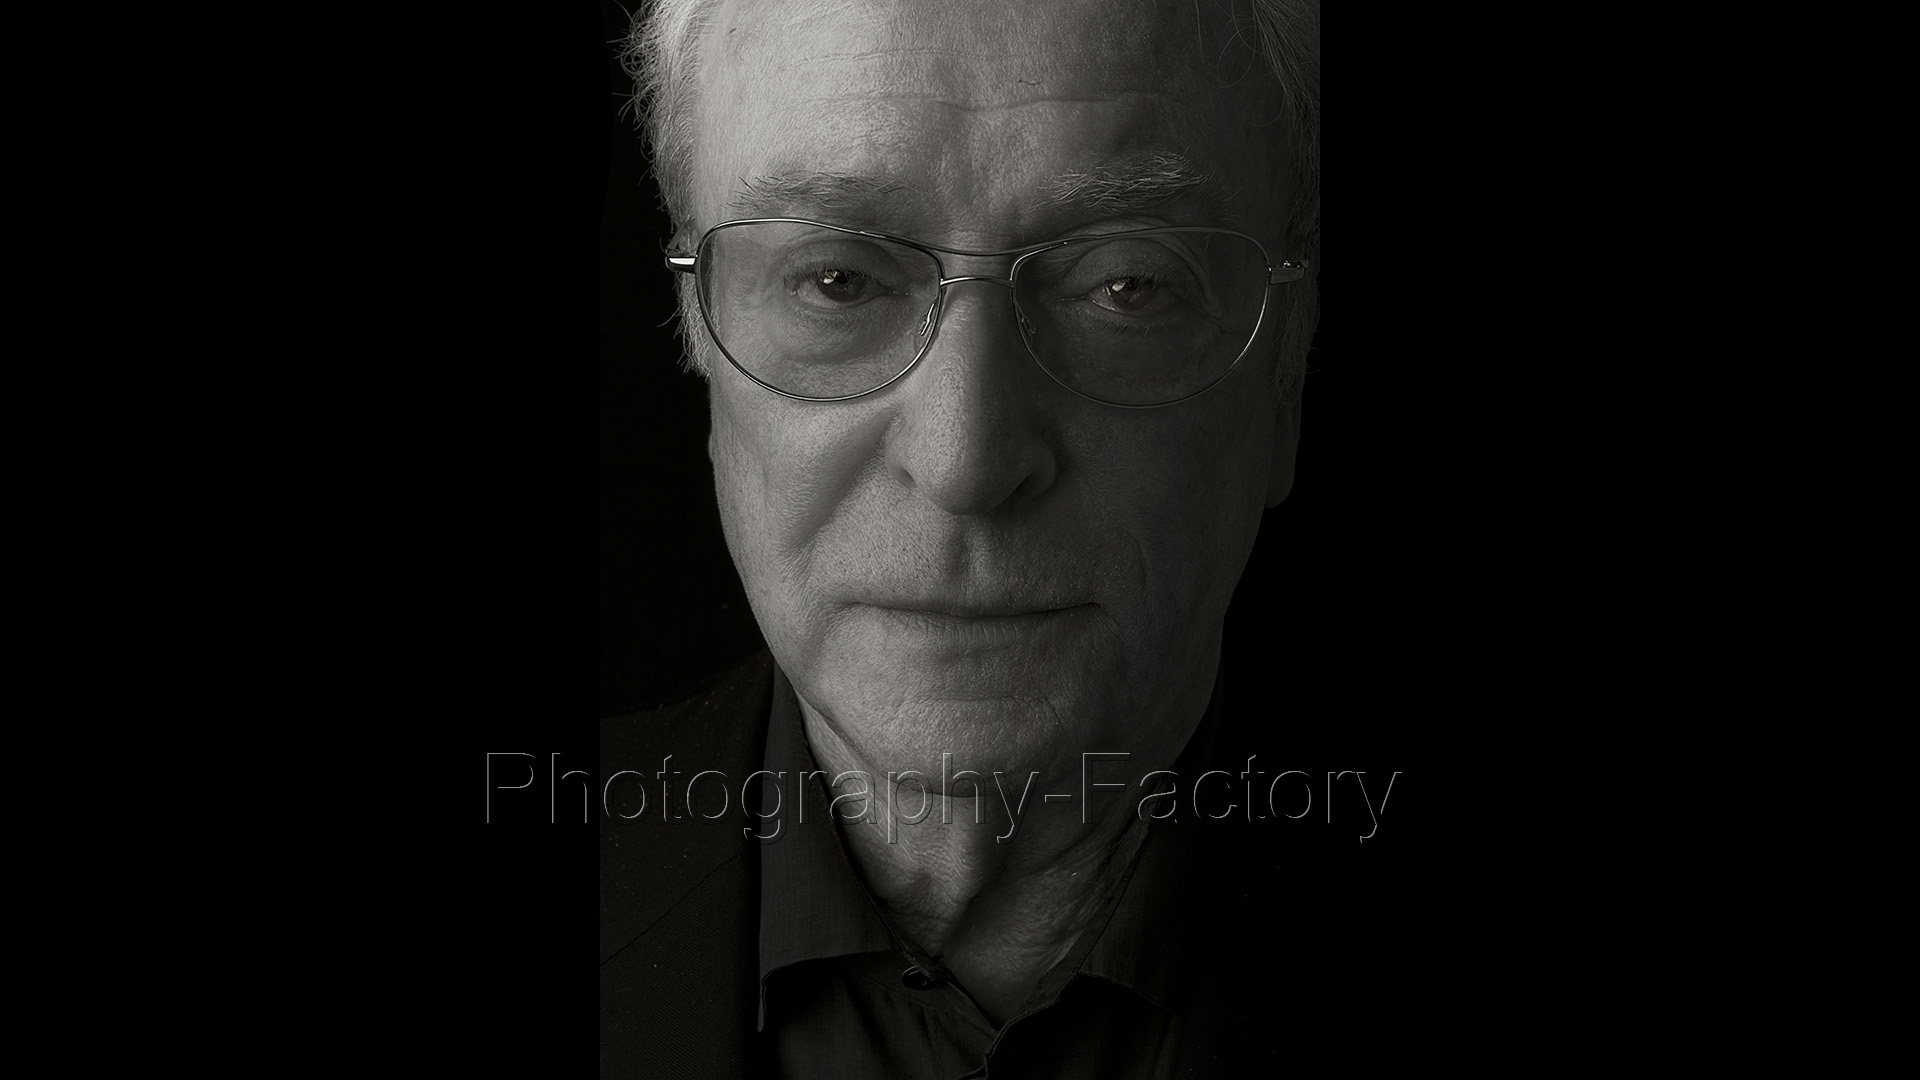 Michael Caine actor oscar winner Londoner